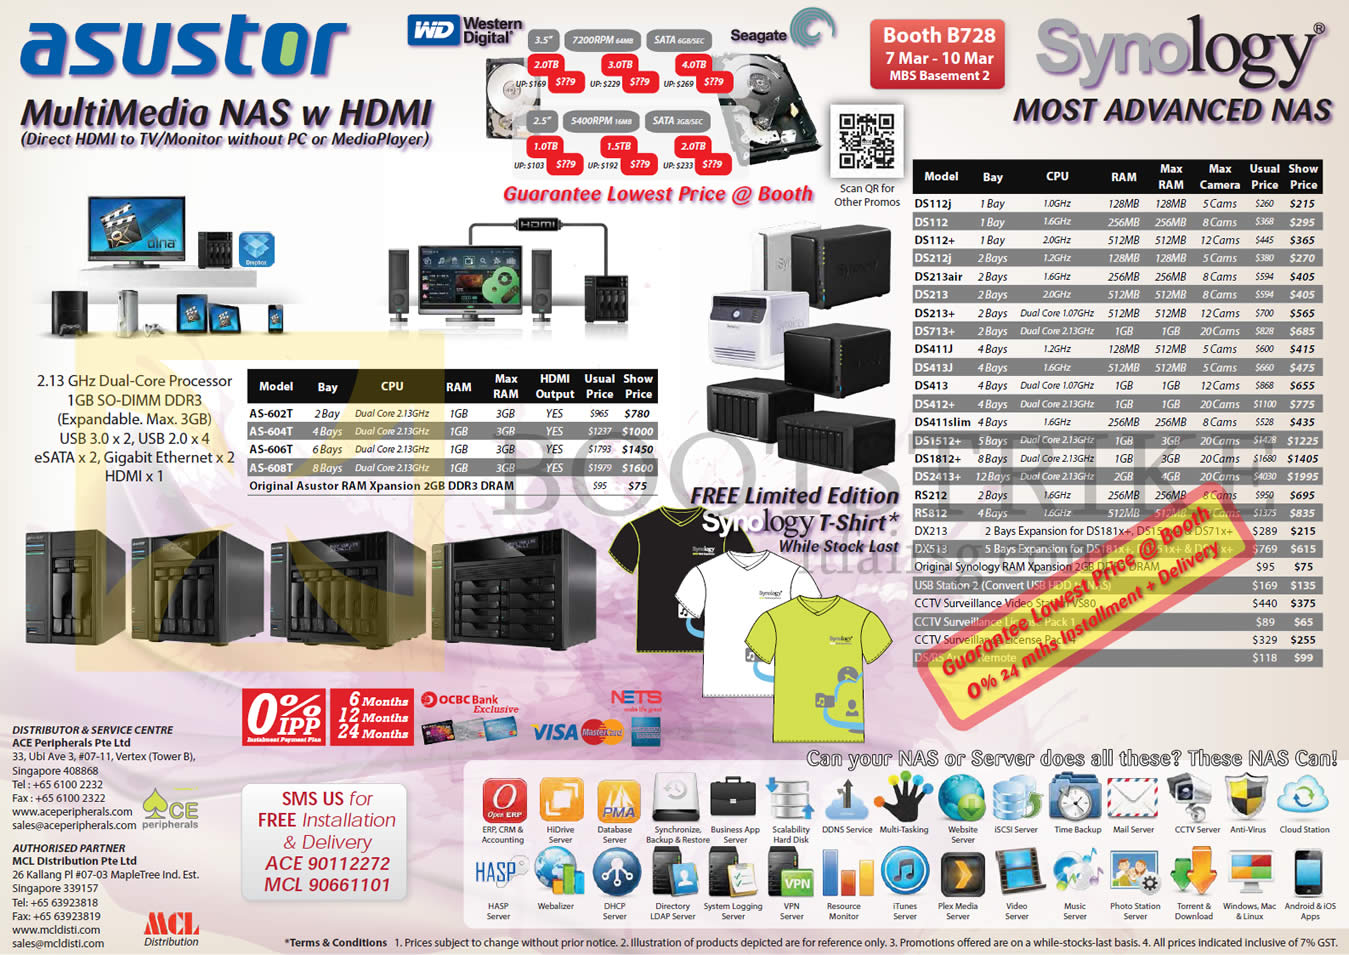 IT SHOW 2013 price list image brochure of Ace Peripherals MCL Asustor Synology NAS, Seagate WD Internal HDD